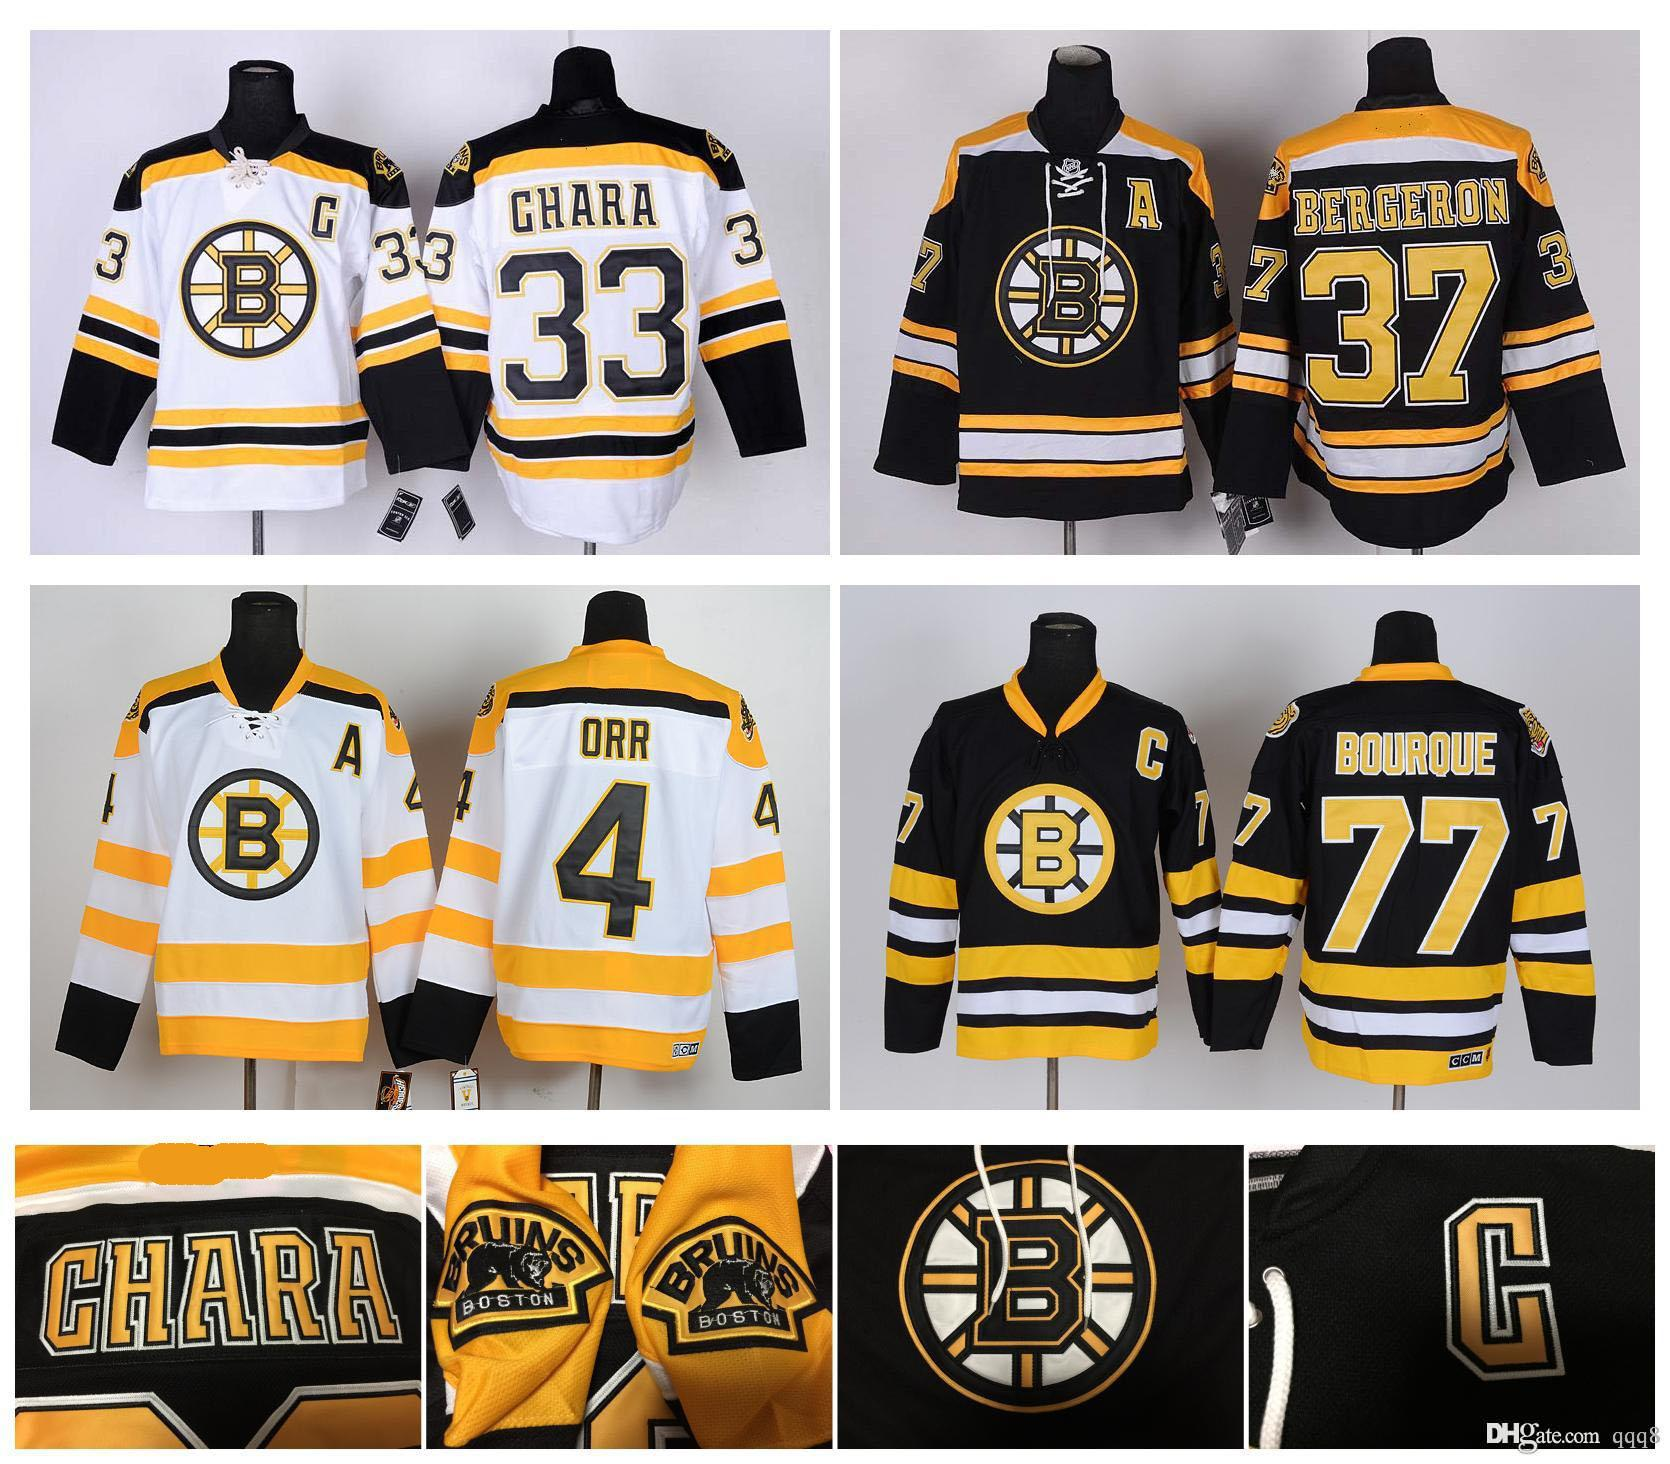 2018 Boston Bruins Jersey 4 Bobby Orr 33 Zdeno Chara 37 Patrice Bergeron 63  Brad Marchand 77 Ray Bourque 8 Cam Neely Stitched Hockey Jersey From Qqq8 78033b2922b